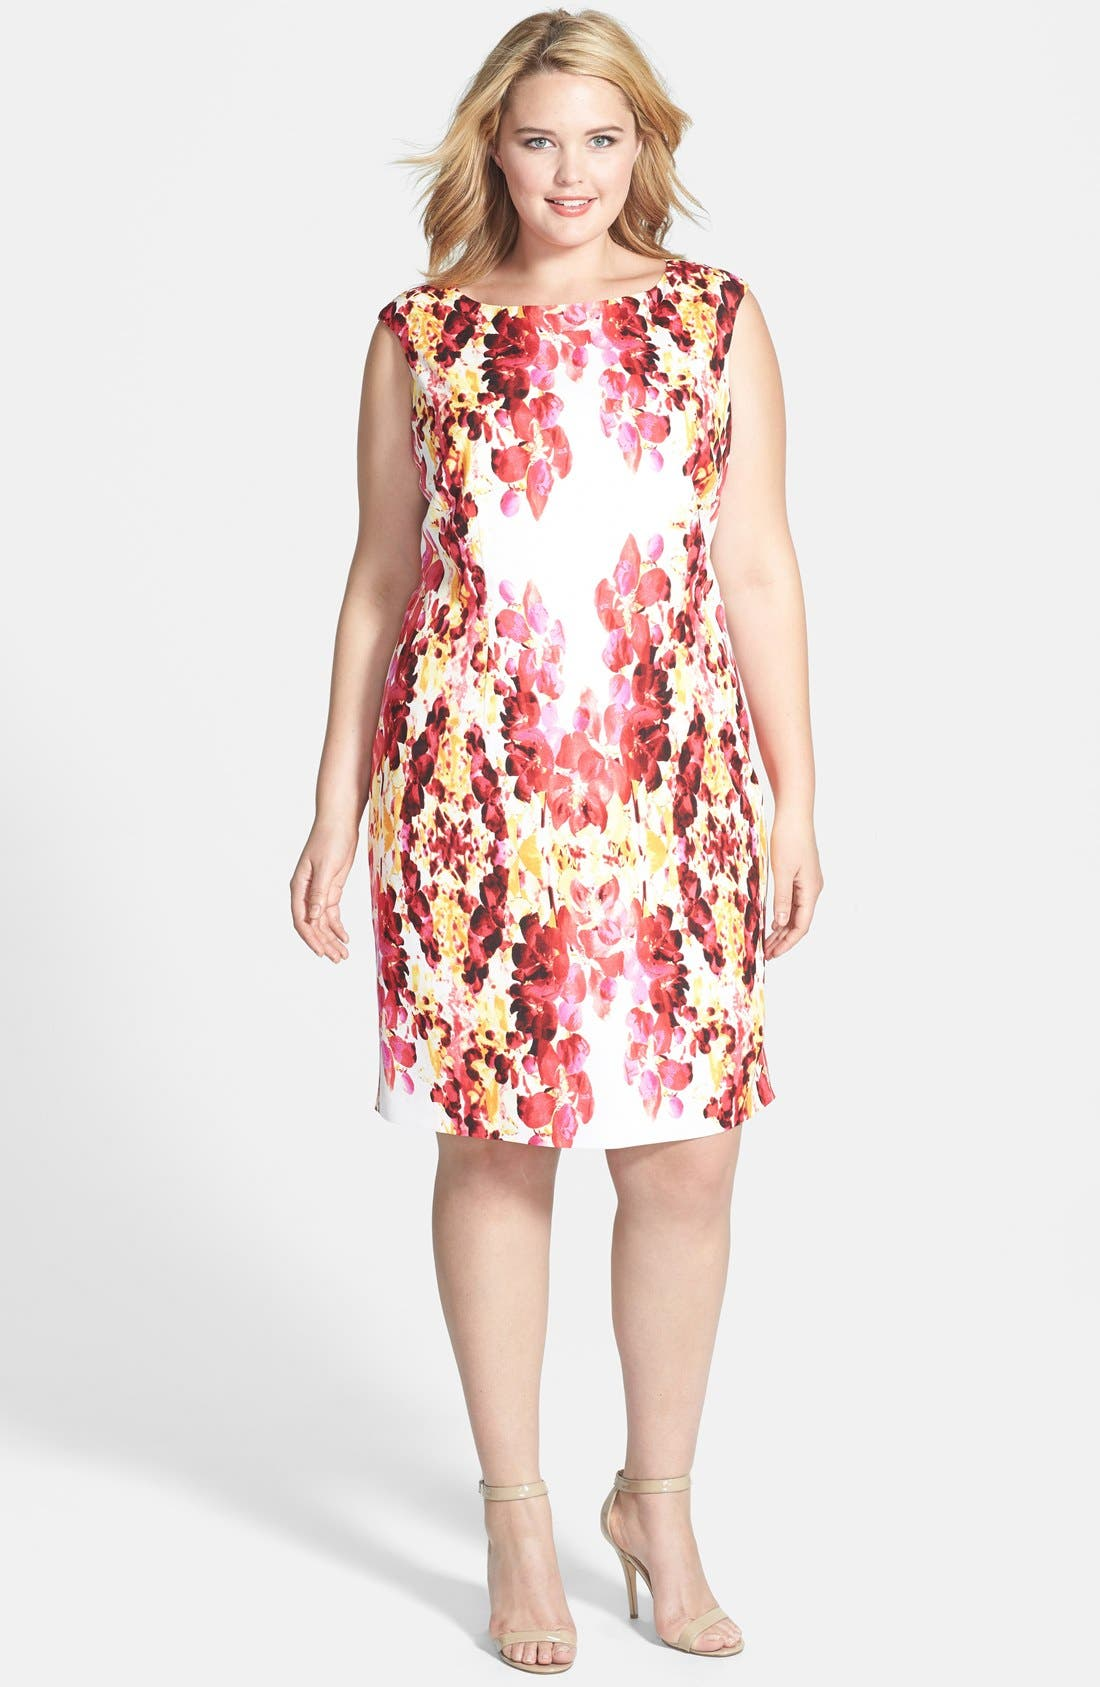 Alternate Image 1 Selected - Adrianna Papell Placed Print Dress (Plus Size)